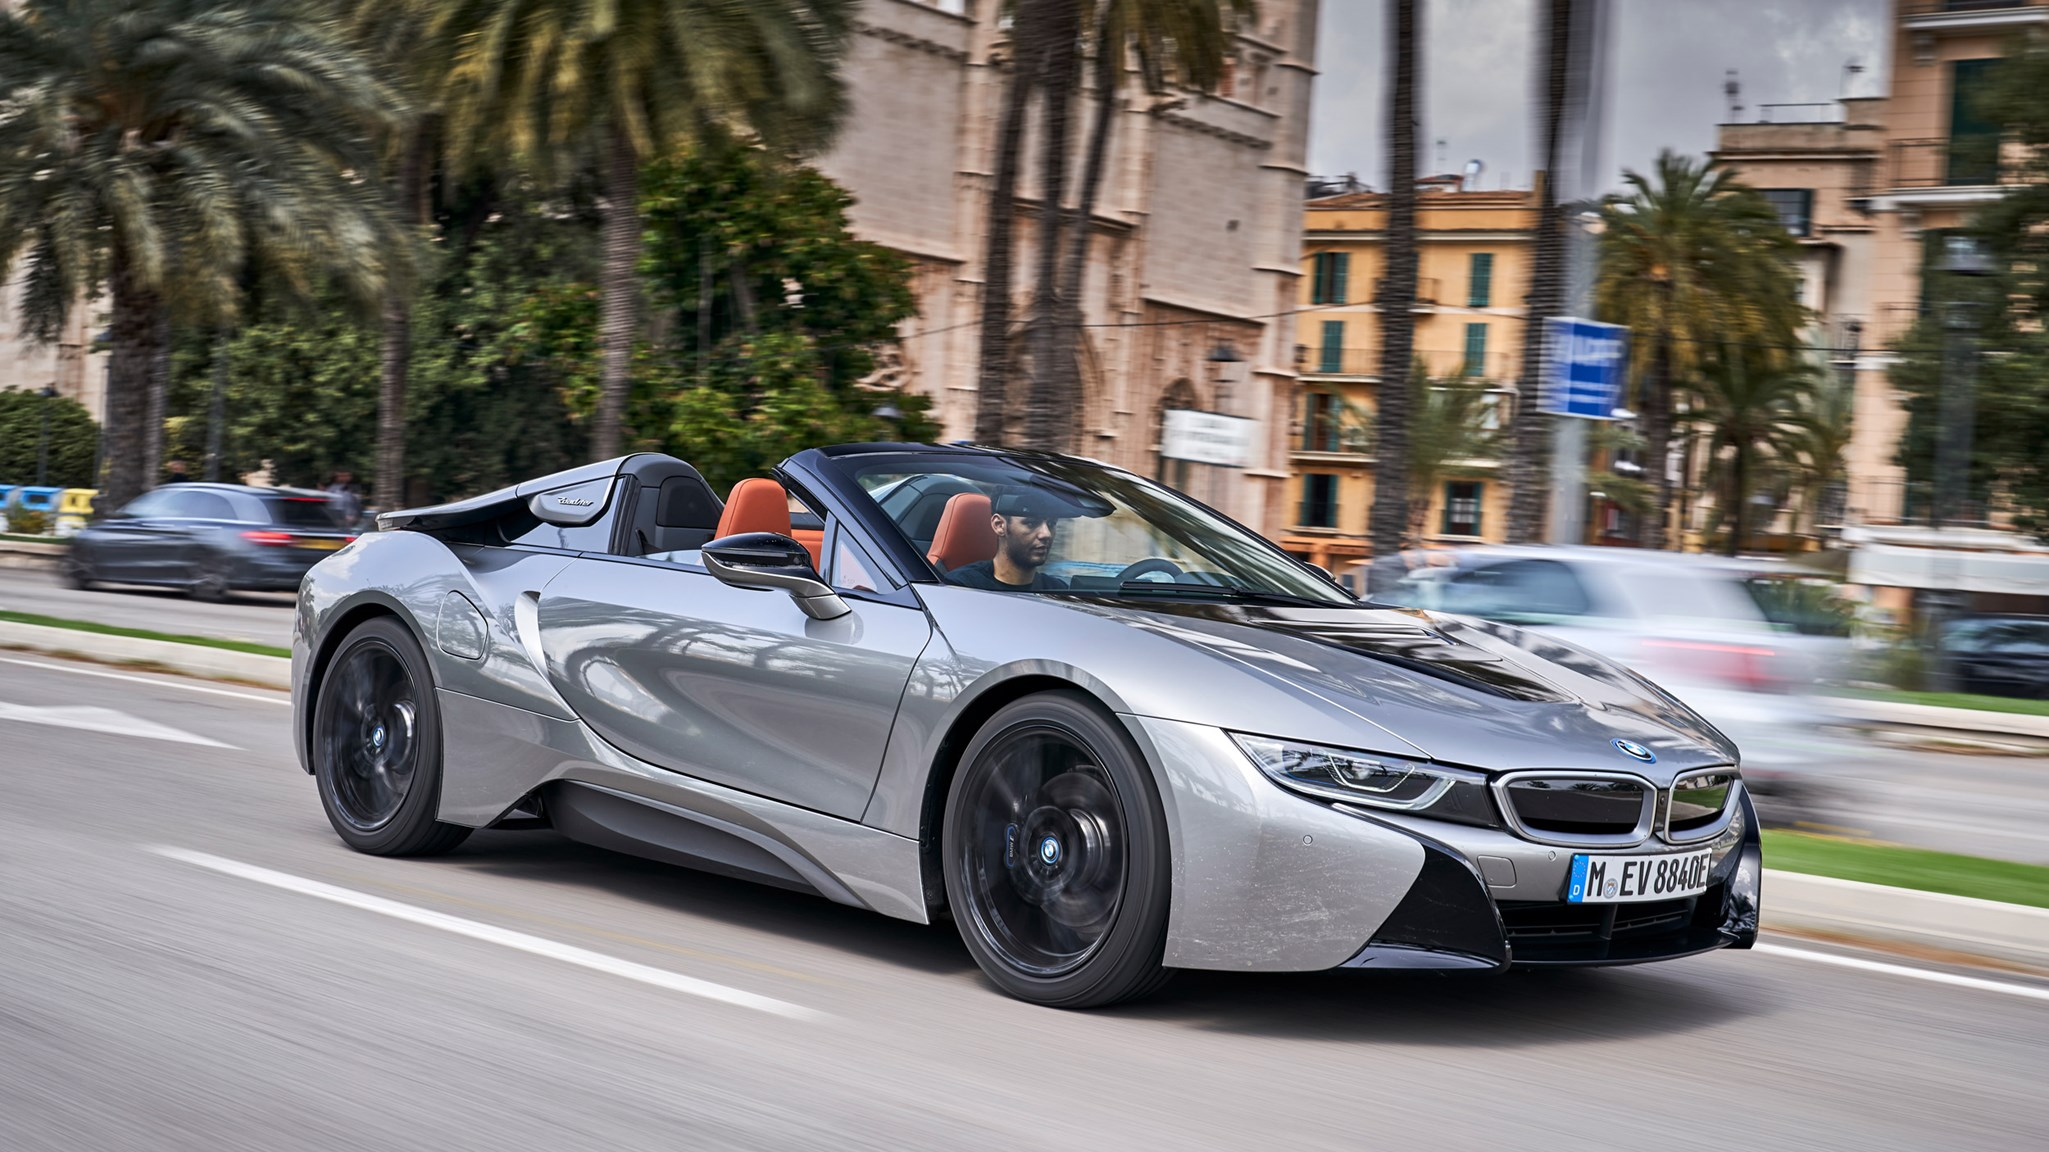 Bmw I8 Roadster 2020 Review Car Magazine